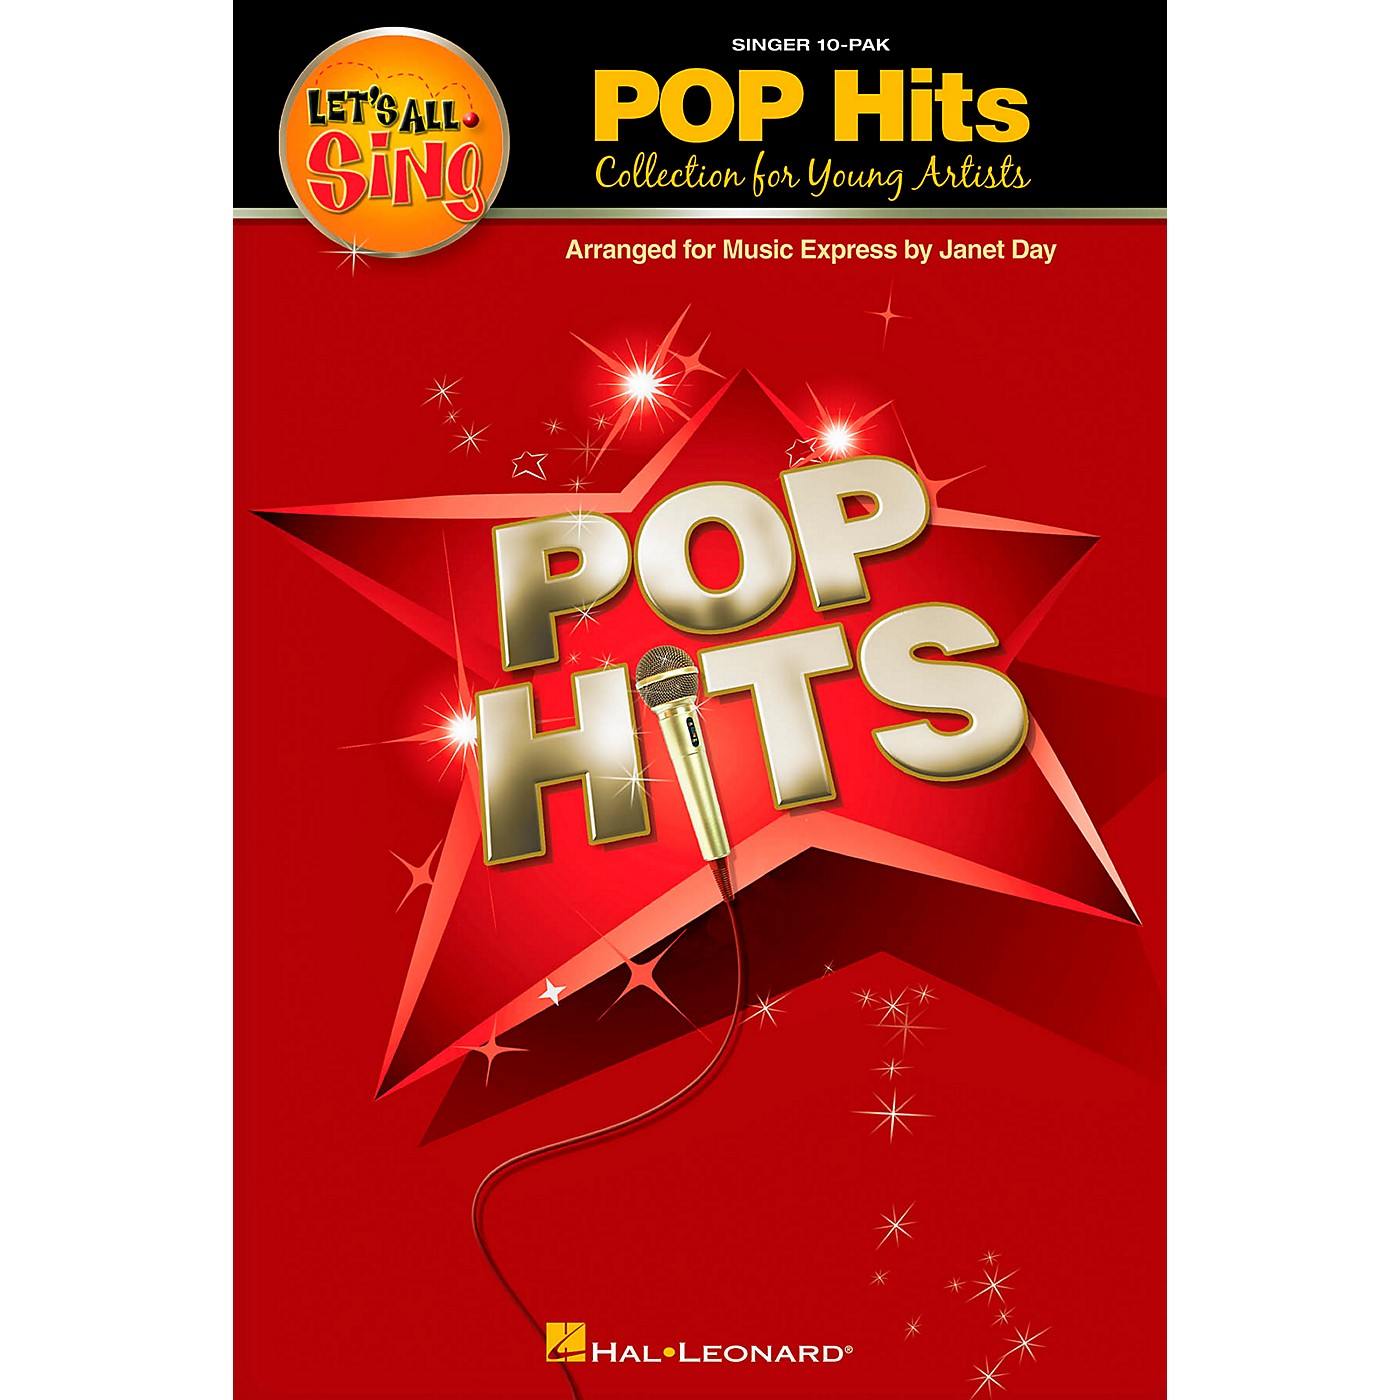 Hal Leonard Let's All Sing Pop Hits - Collection for Young Voices 10 Pak thumbnail